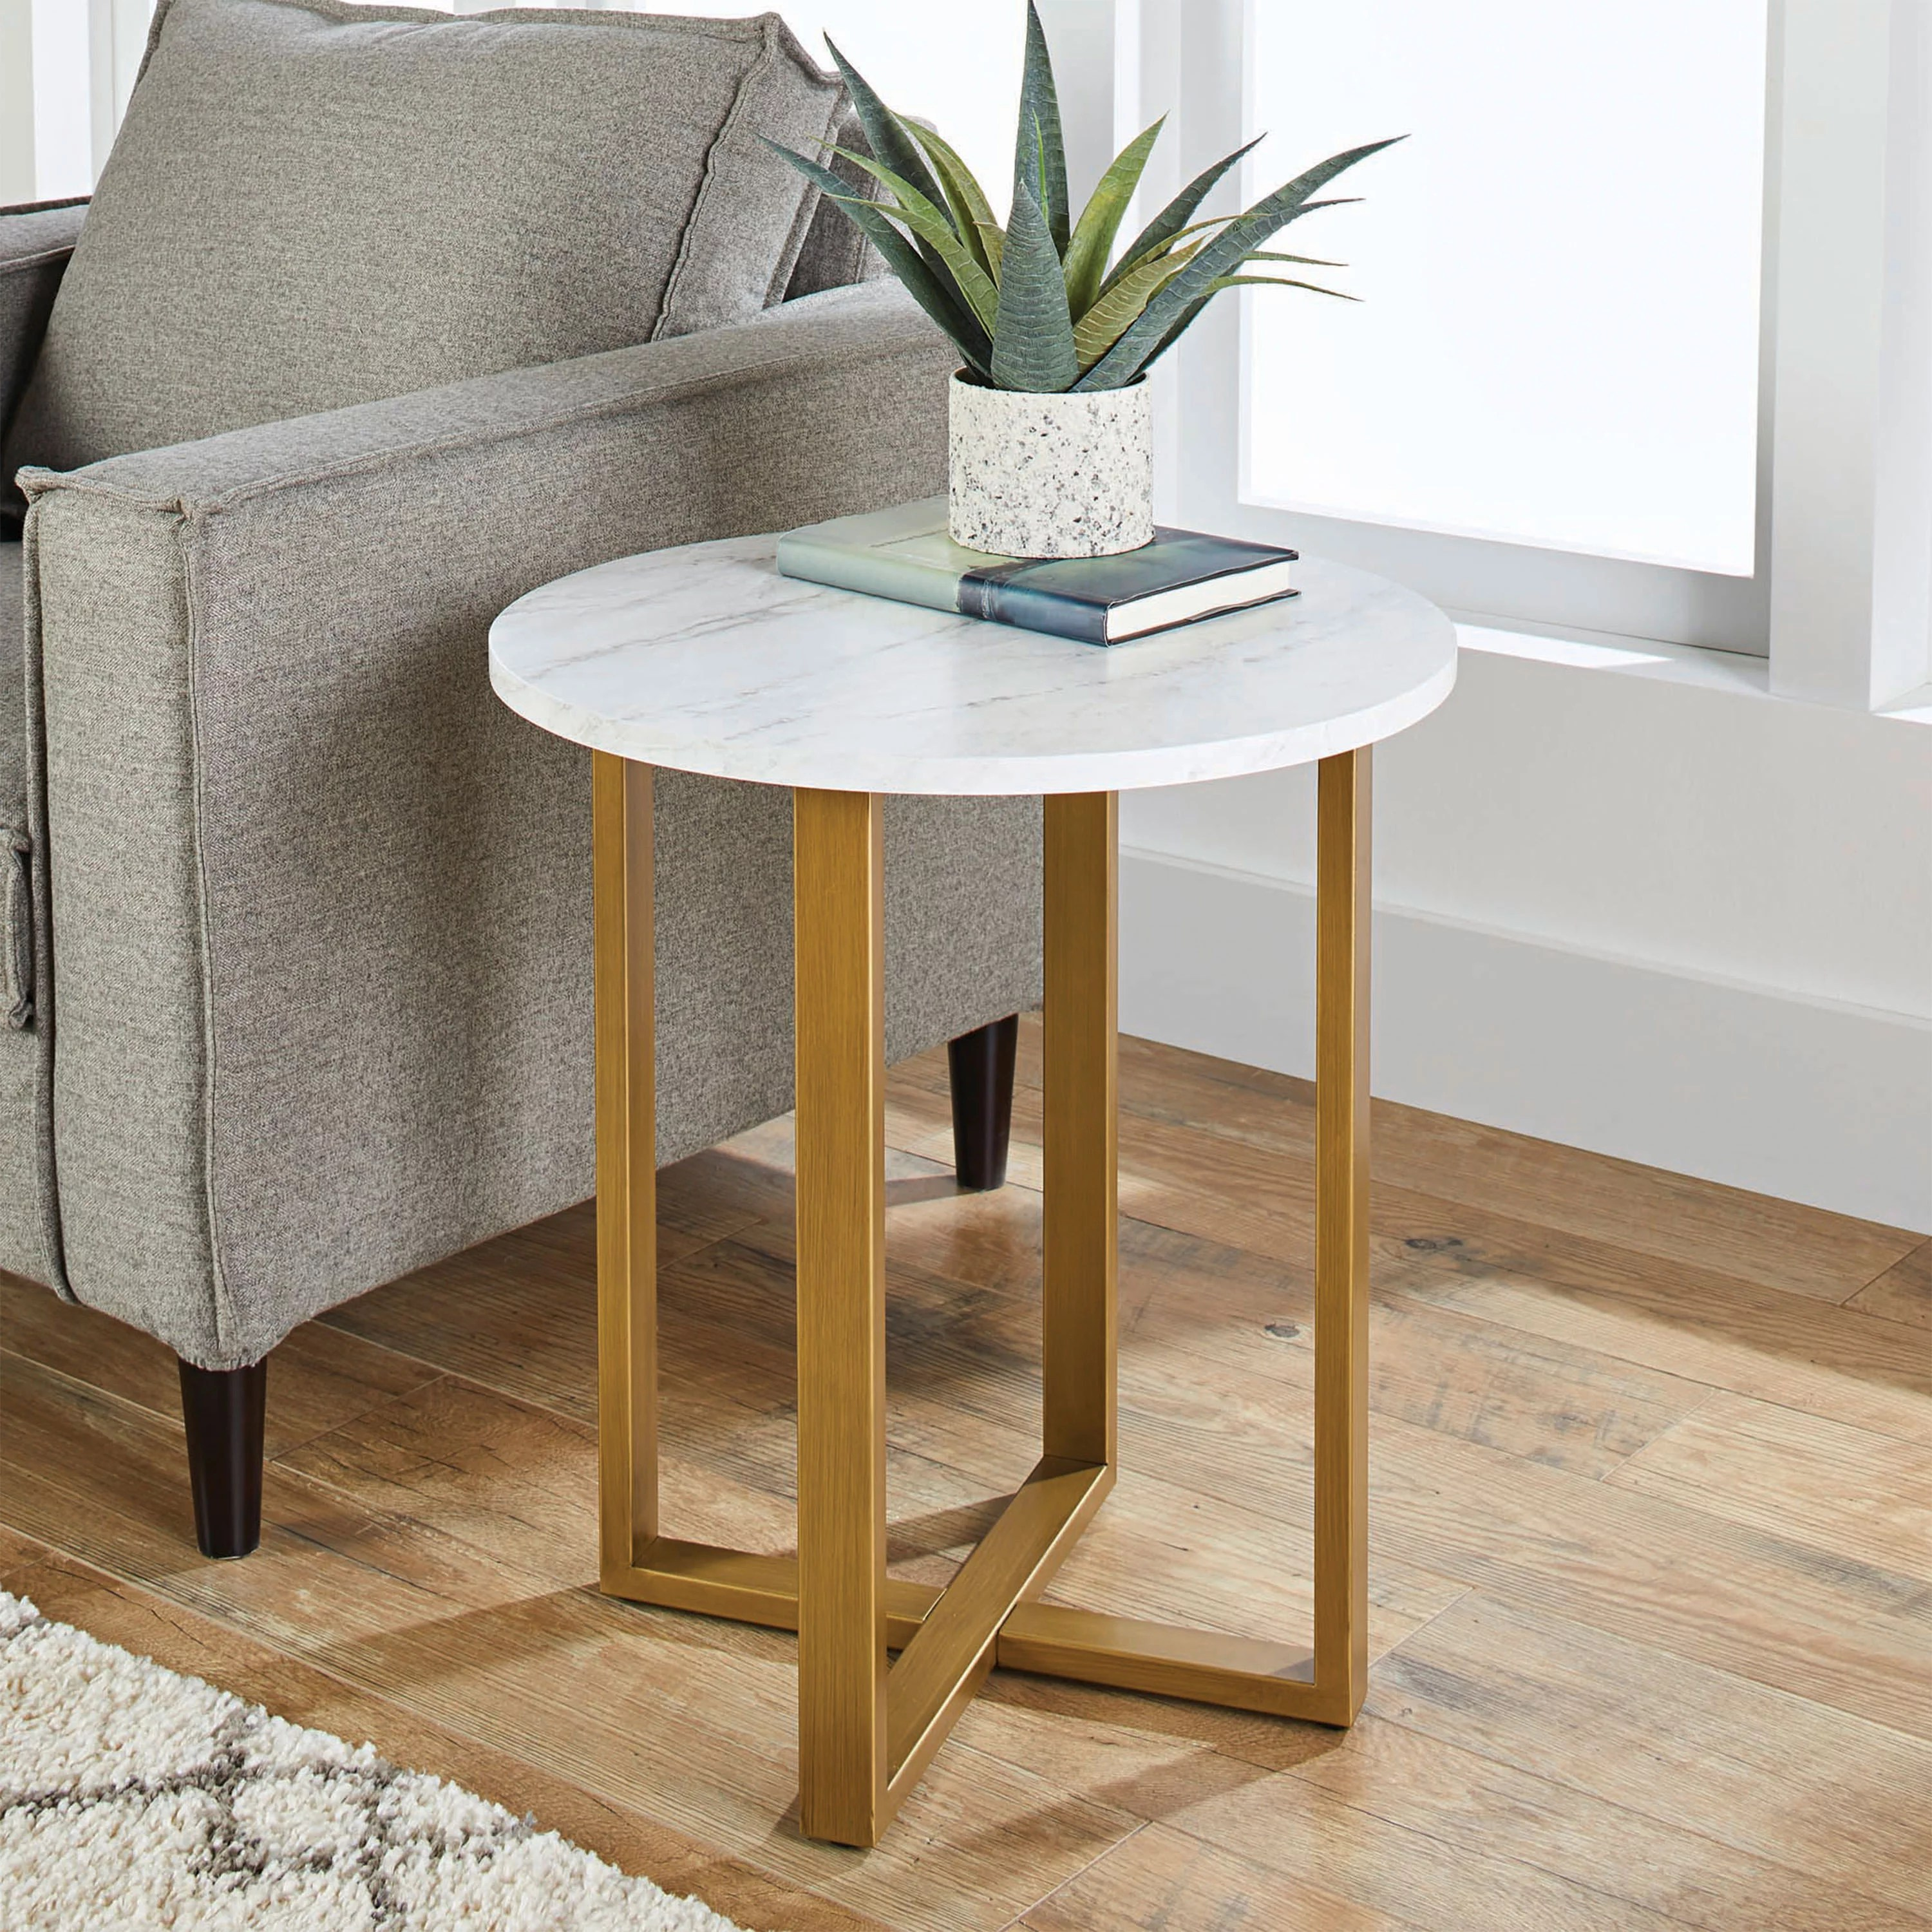 Details About Modern Side Table W Faux Marble Top Round Gold Steel Base Living Room Furniture